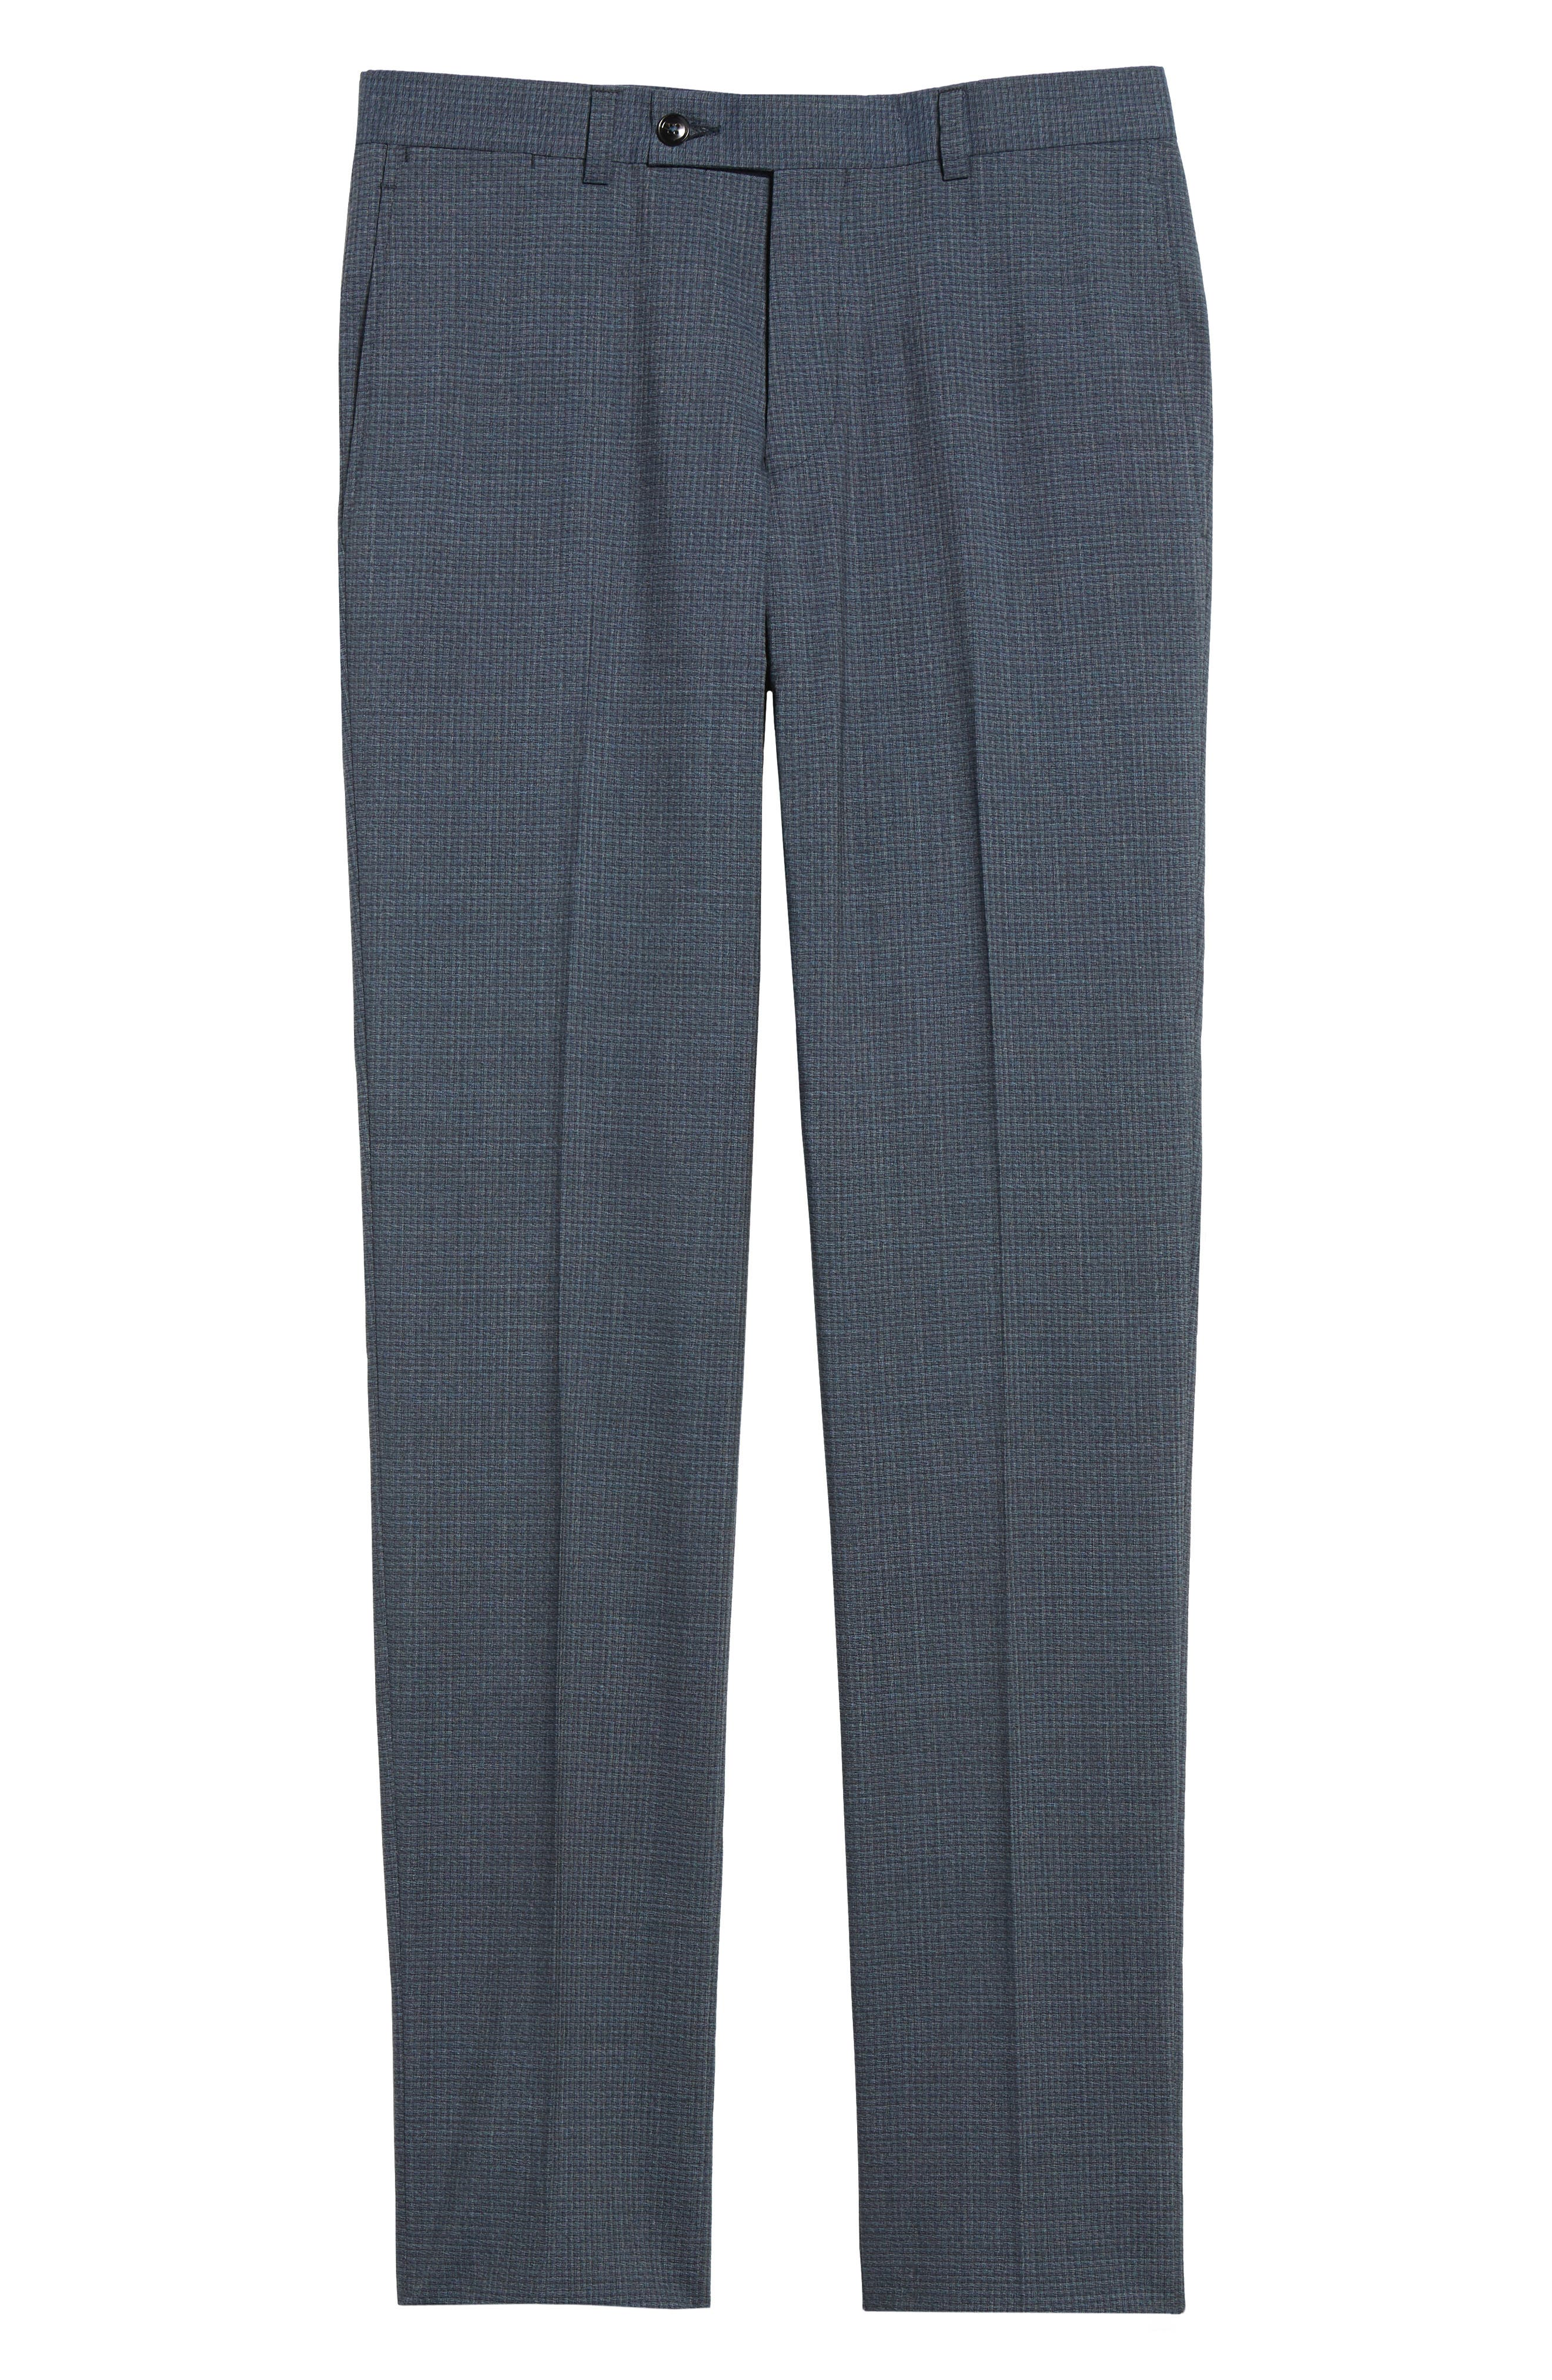 Flat Front Check Wool Trousers,                             Alternate thumbnail 6, color,                             Blue